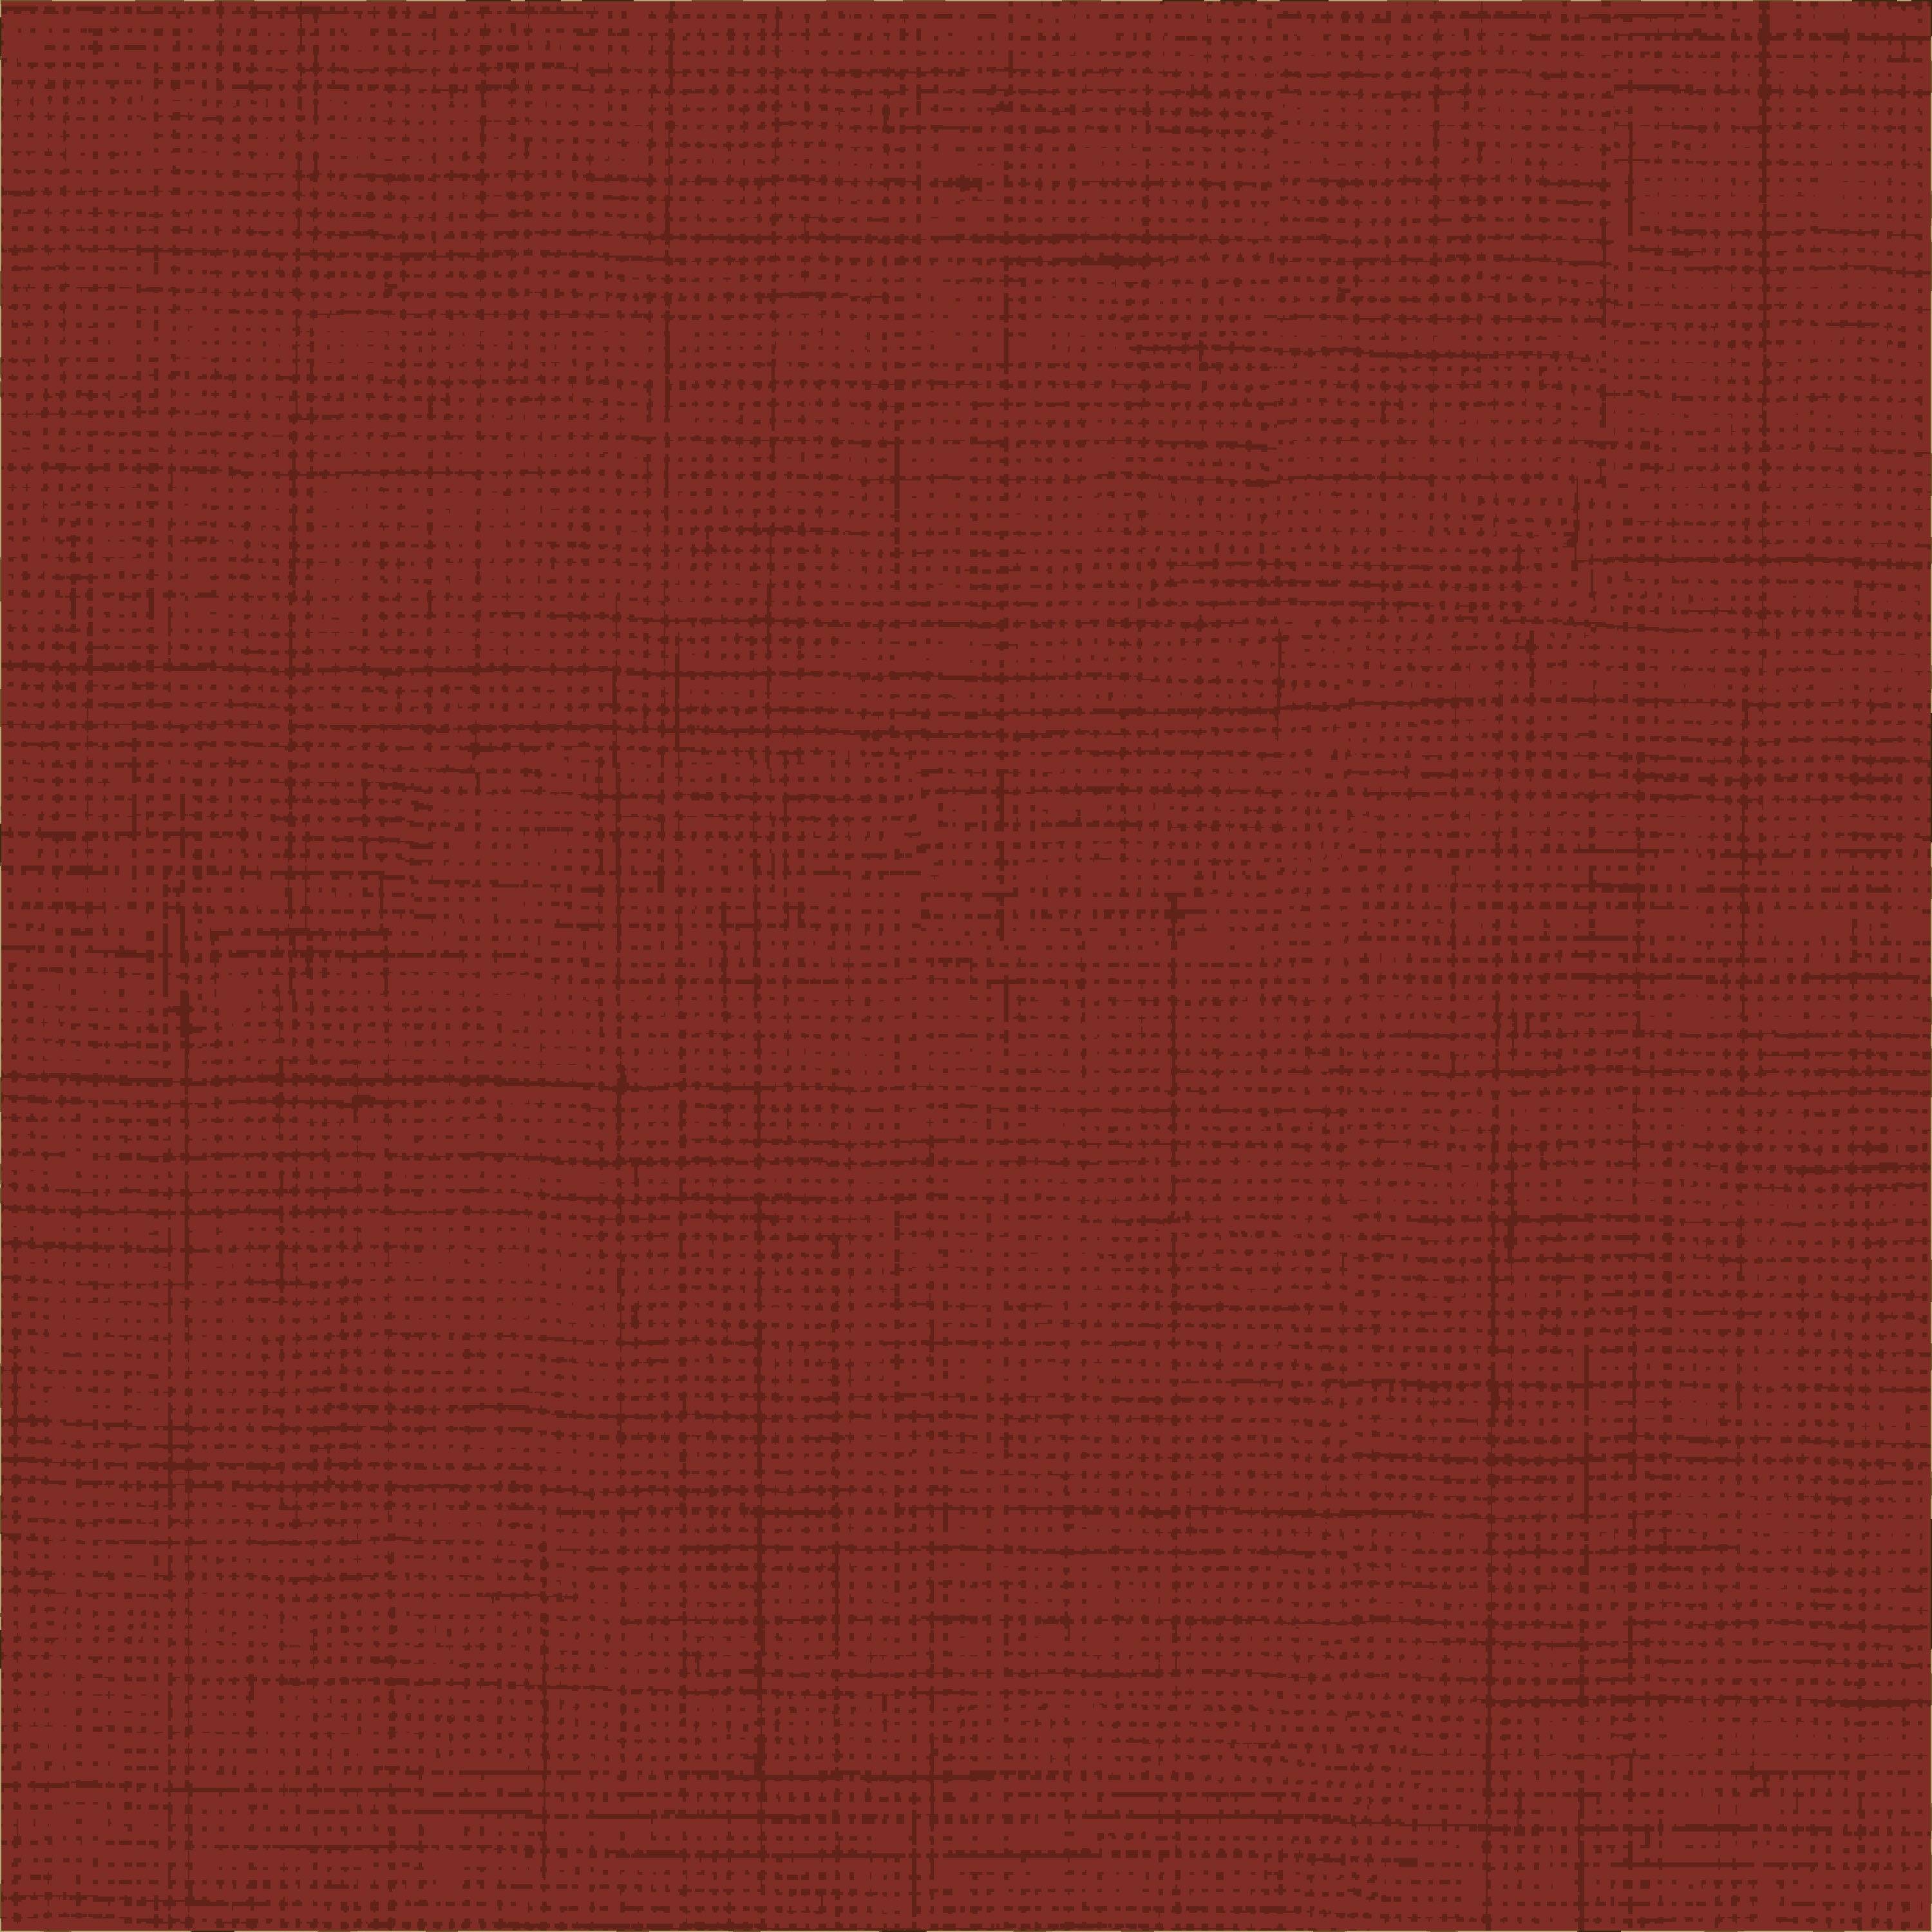 45'' Cotton Duck Canvas Tex Sol Ruby